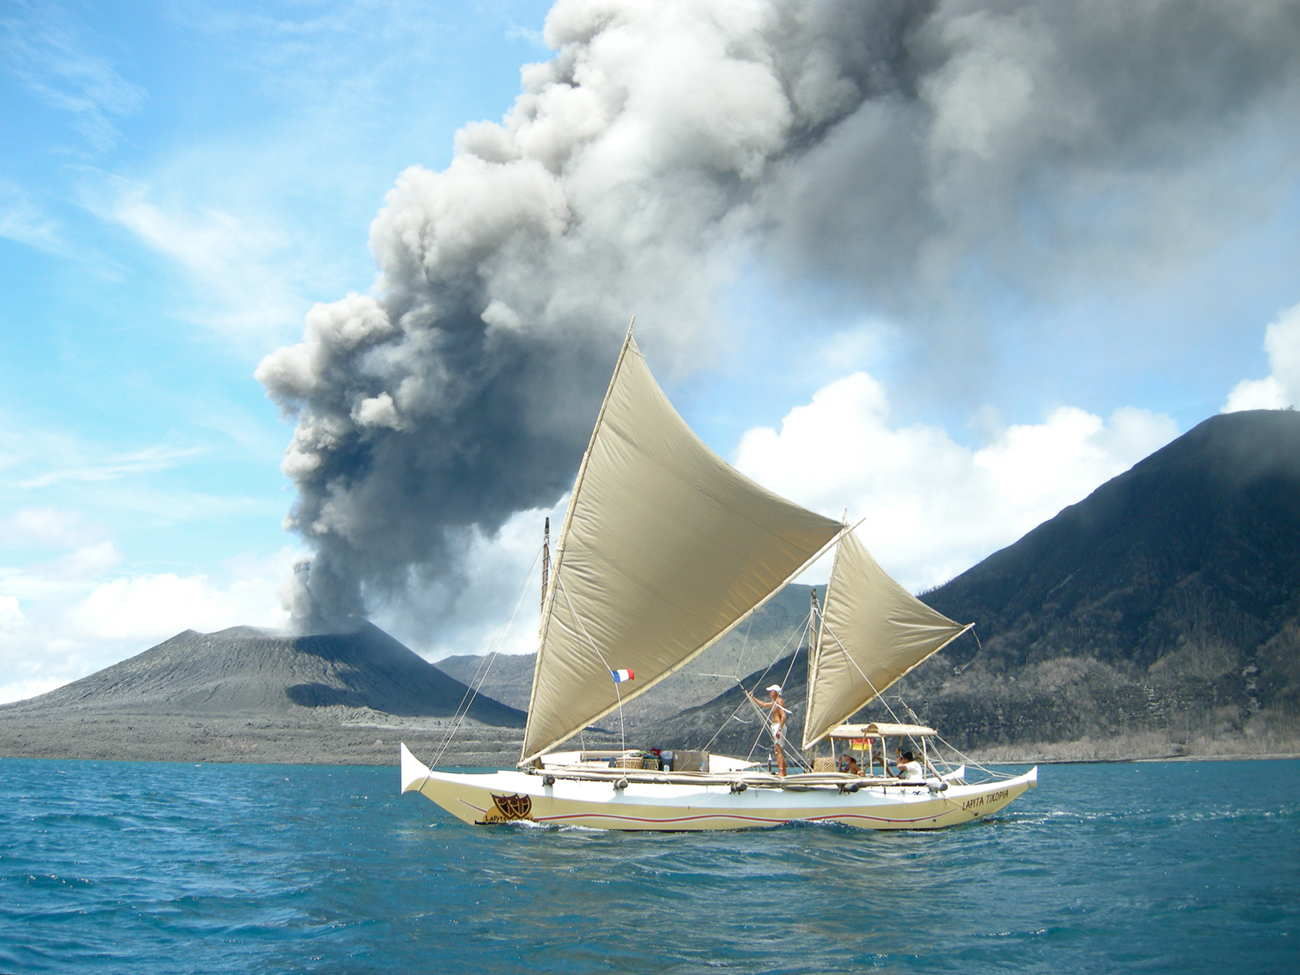 Tama Moana sailing past a smoking volcano